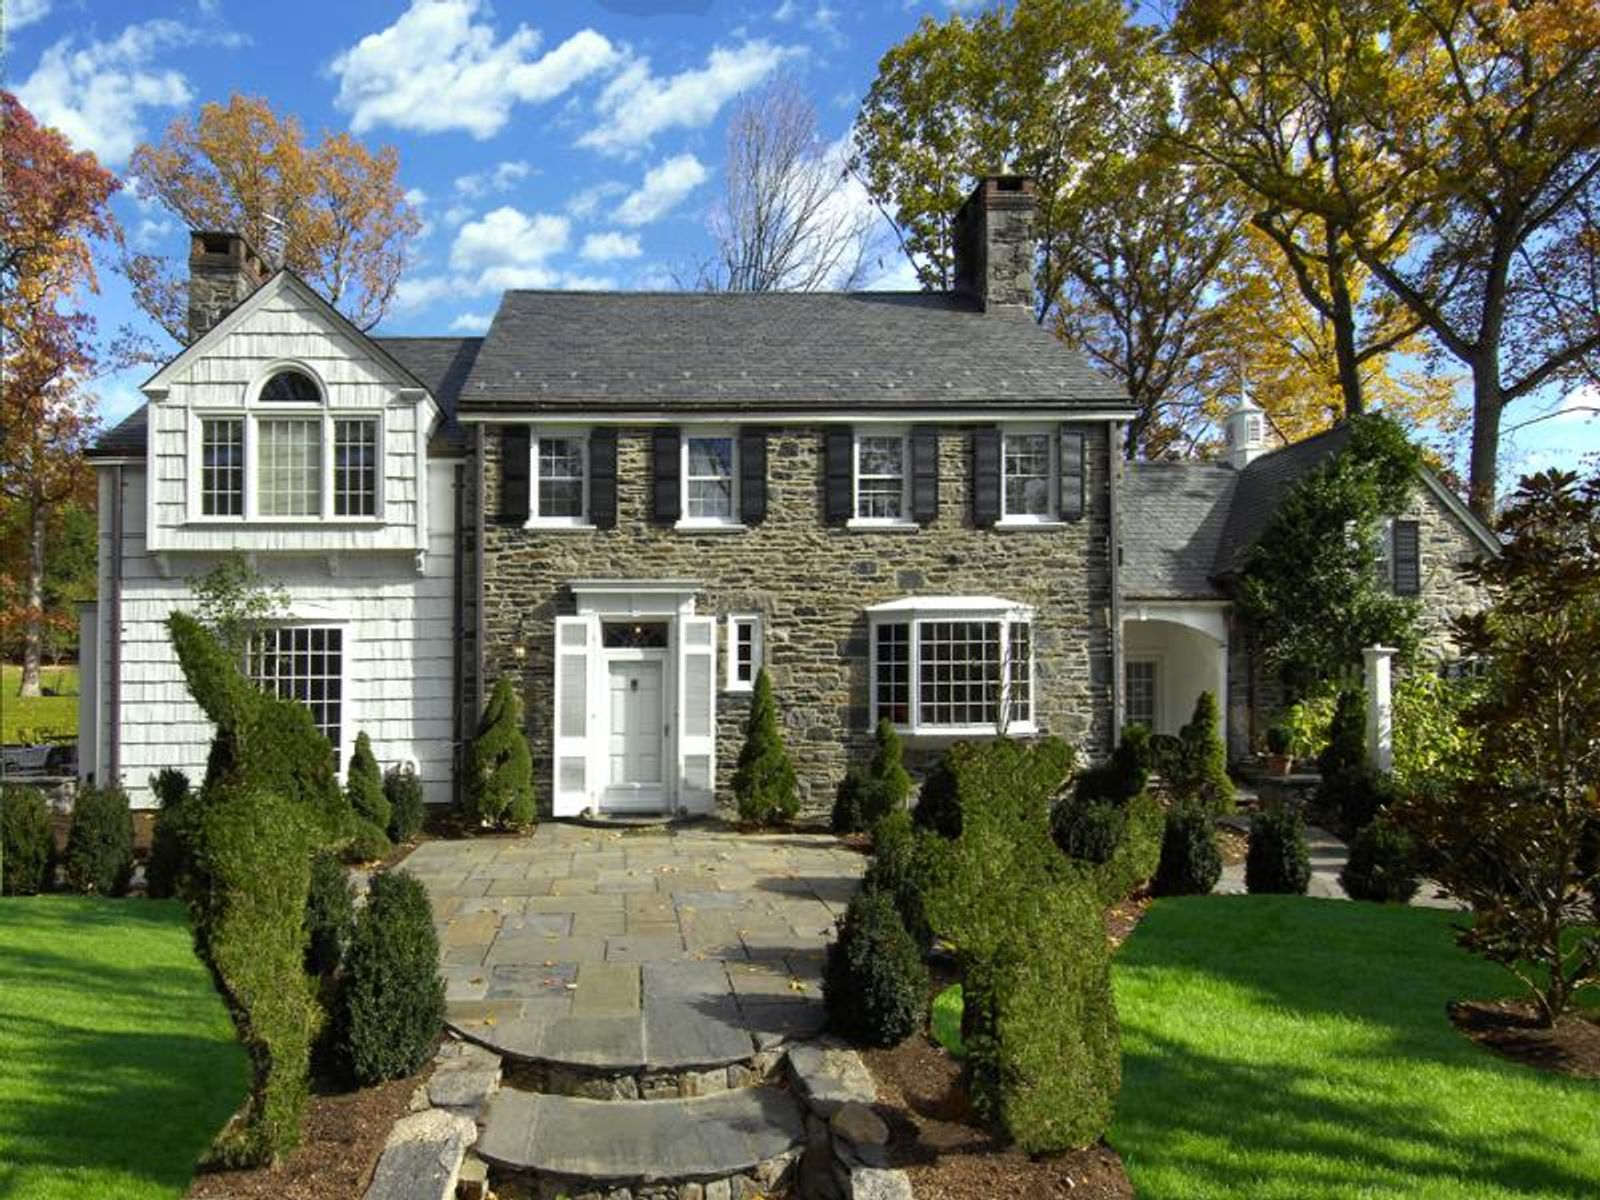 Country Compound, Greenwich CT Single Family Home - Greenwich Real Estate